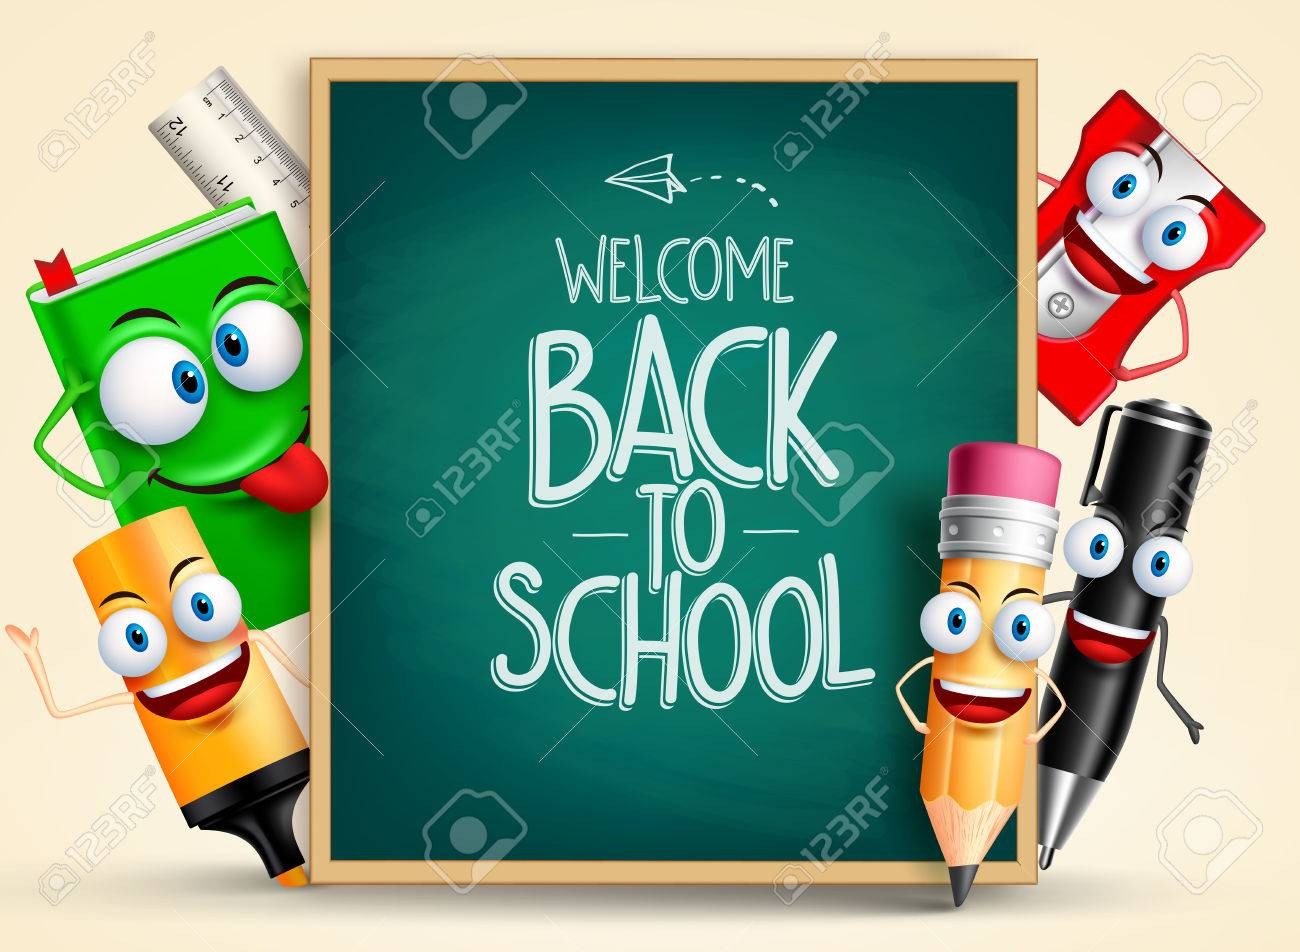 School vector characters of funny pencil, pen, sharpener and other school items holding blackboard with back to school writing. Vector illustration - 57976220